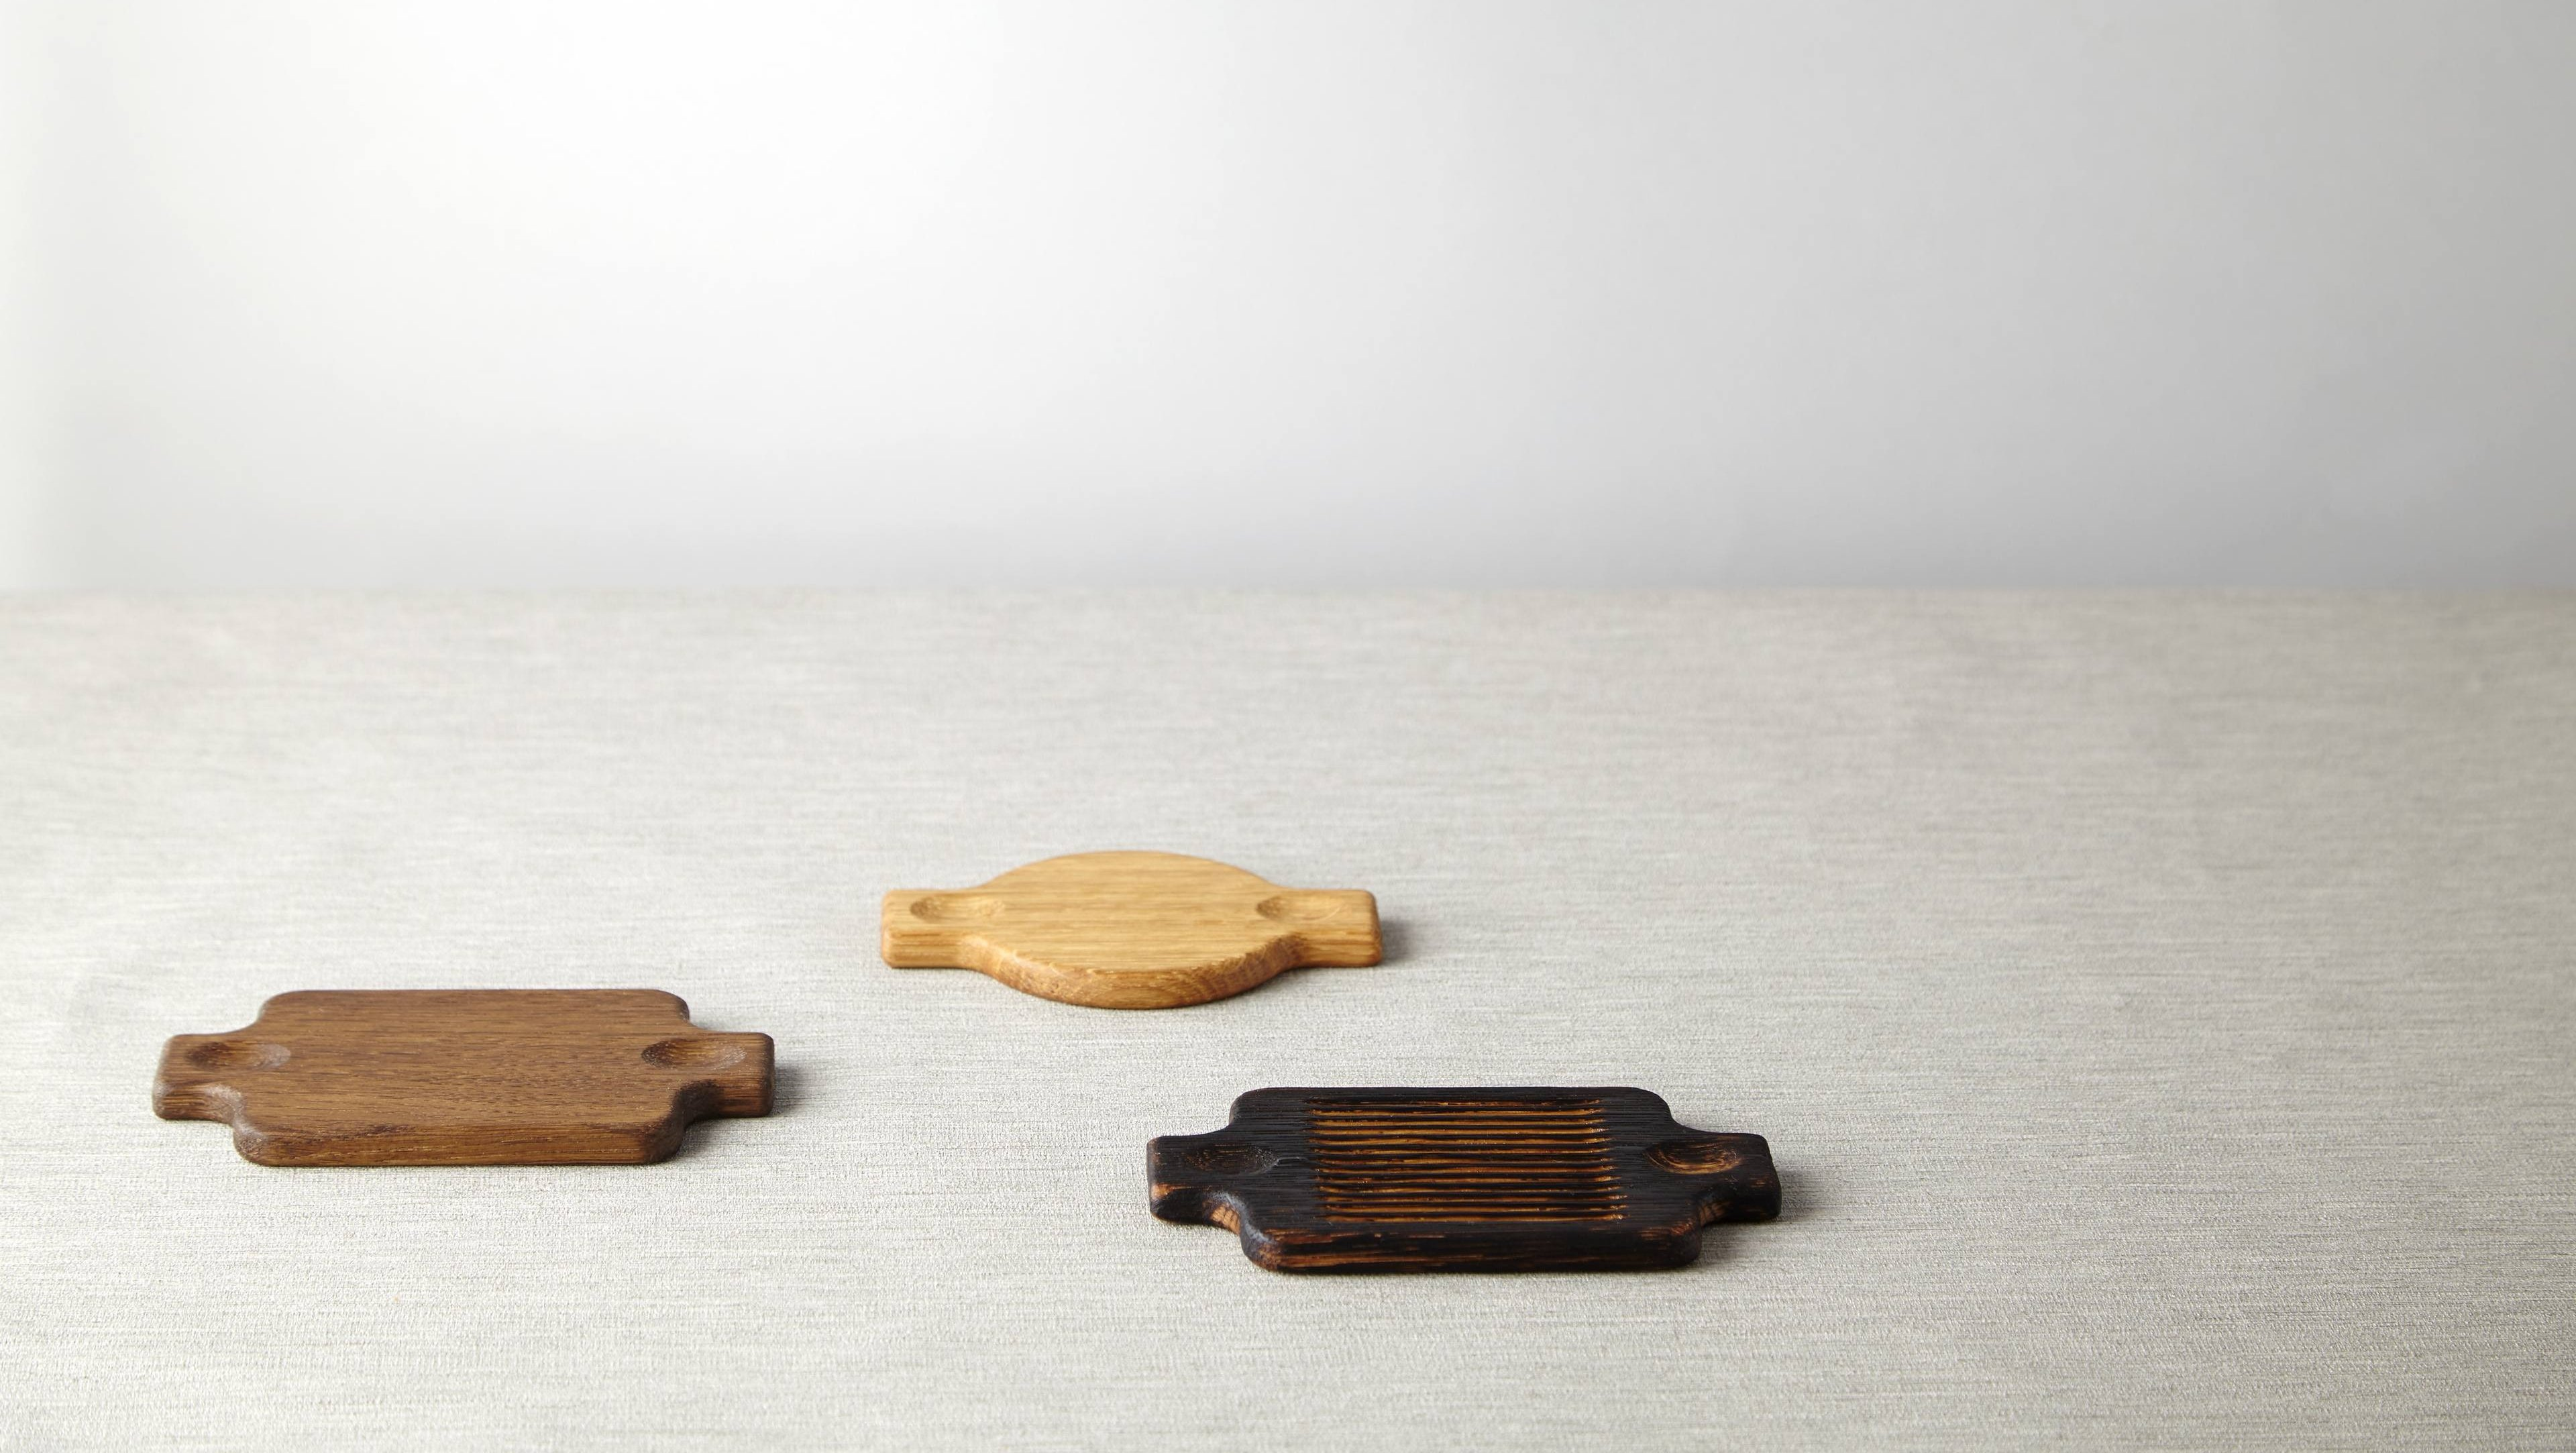 3 wooden boards made from natural, fumed and scorched oak